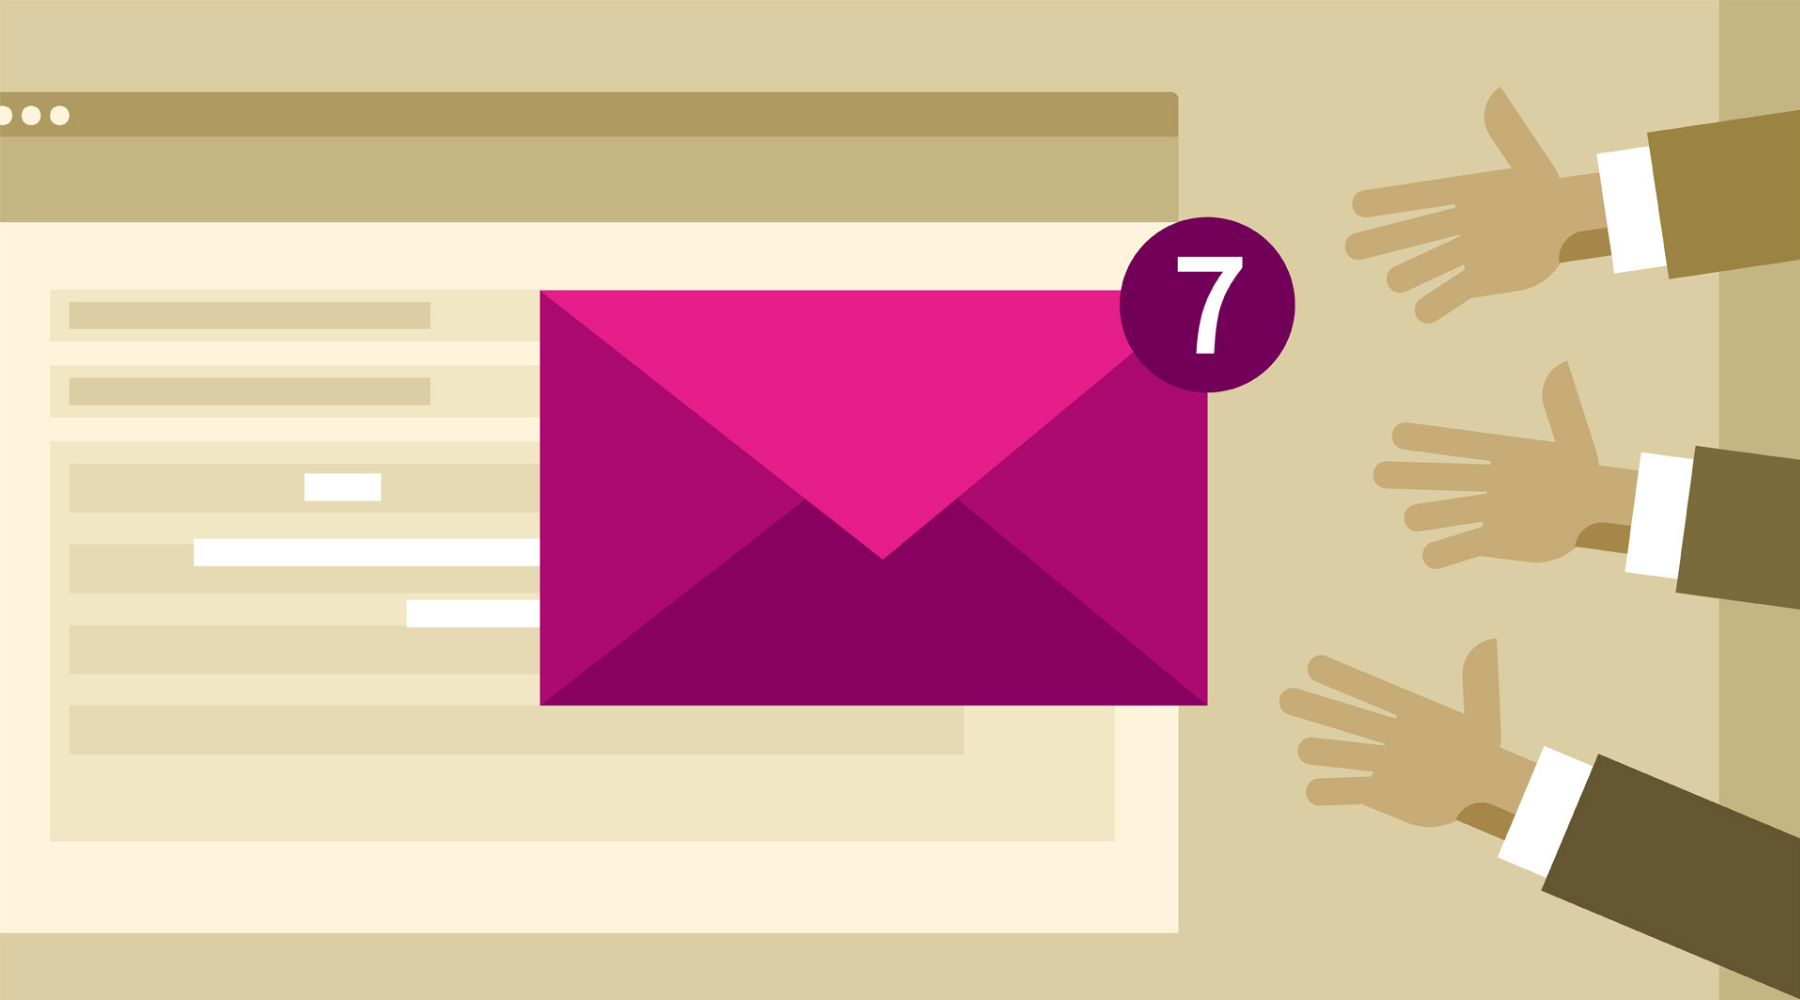 How to get your emails opened and read - B2B Email Marketing Guide 2